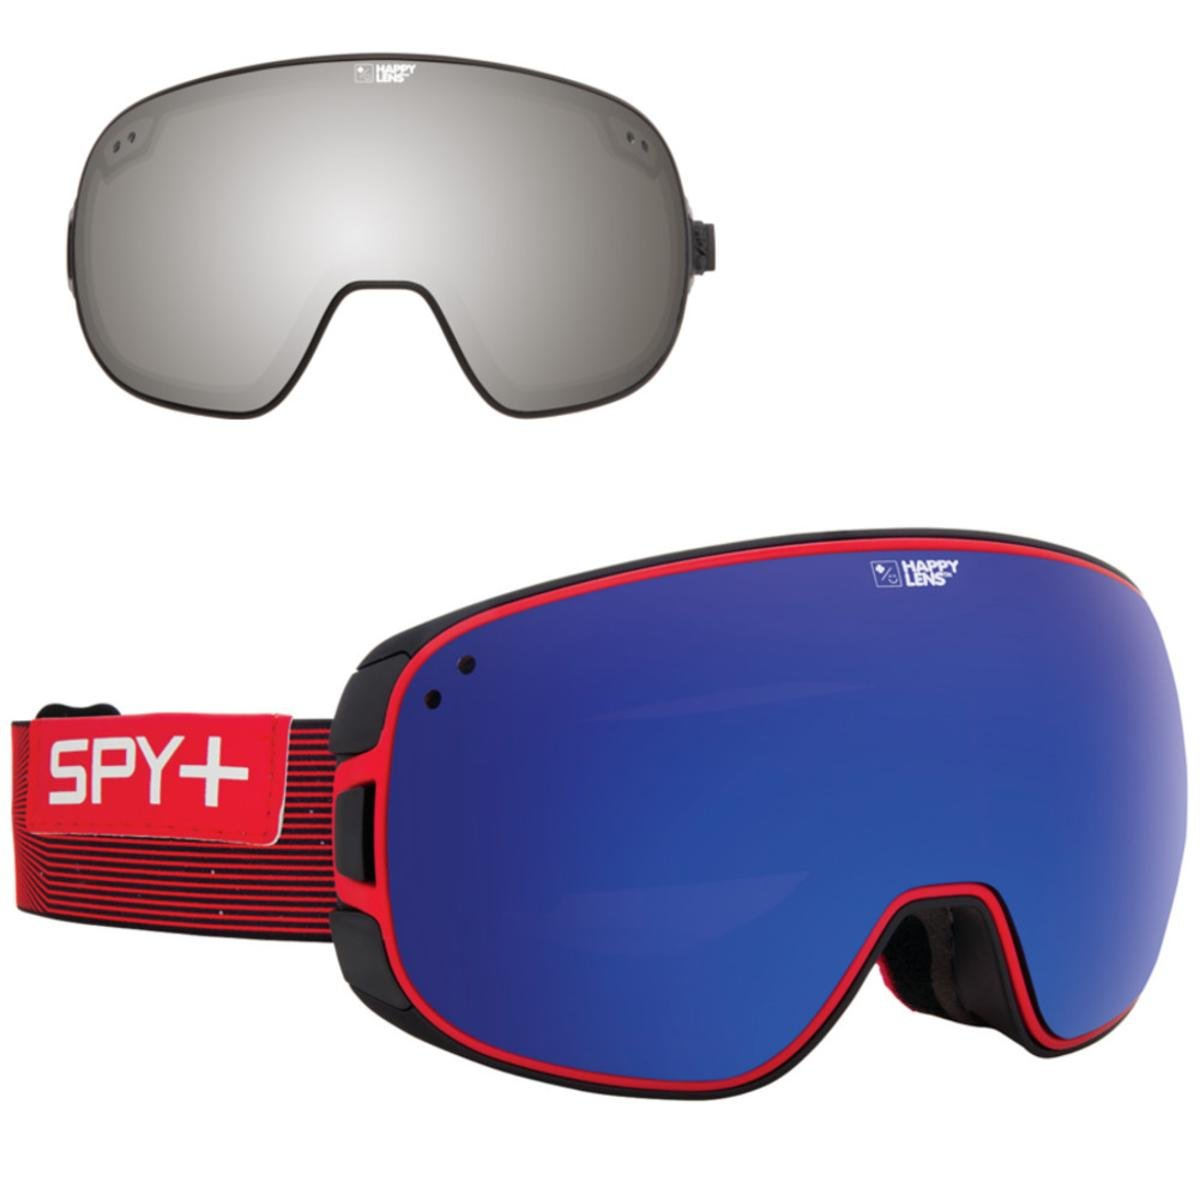 Spy Optic Galactic Red Happy Bravo Winter Sport Racing Snowmobile Goggles, Bronze w/ Dark Blue Spectra, One Size